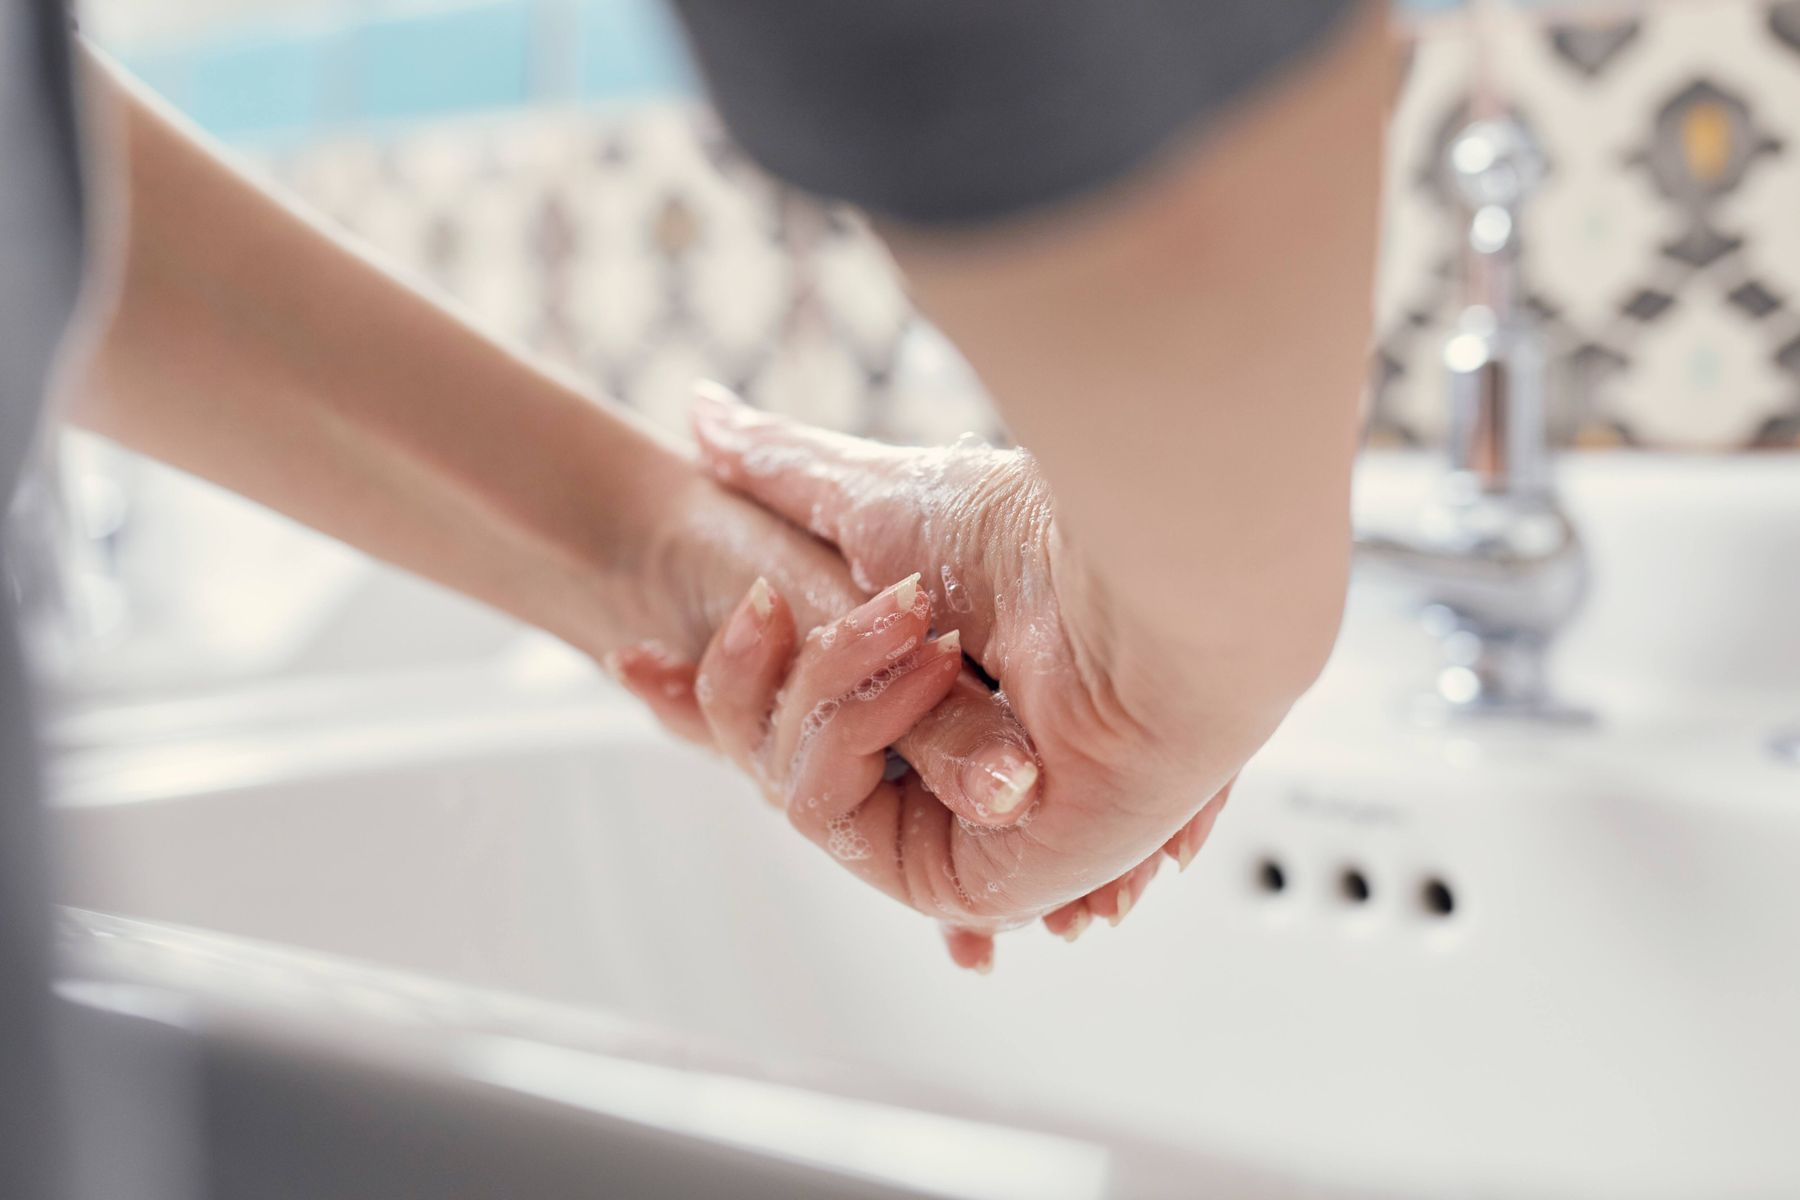 how to shower property,  maintain good personal hygiene